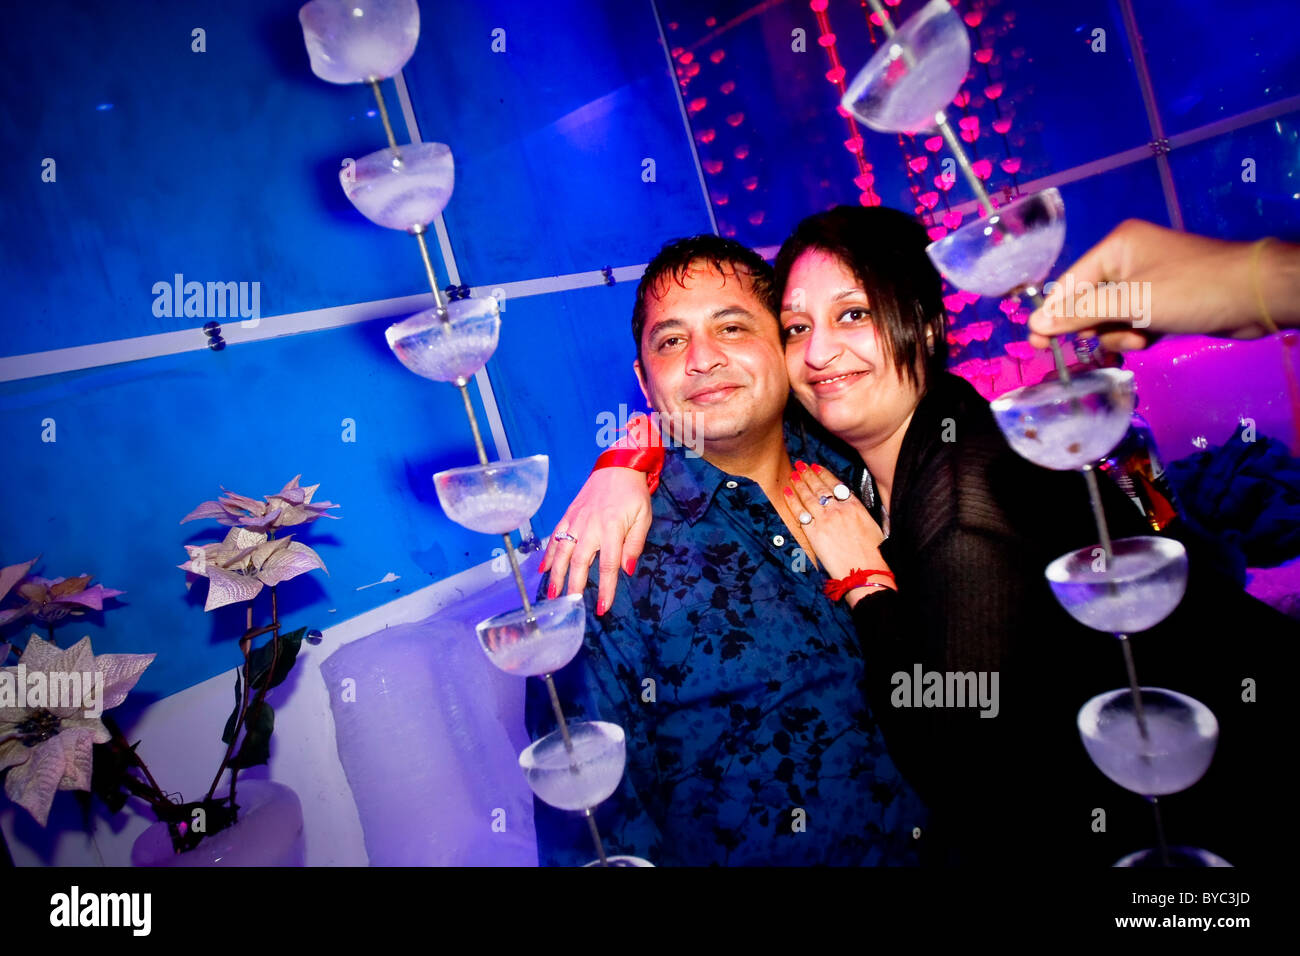 Guests at the nightclub 21 Fahrenheit, India's first ice bar, in Mumbai (Bombay) in India - Stock Image